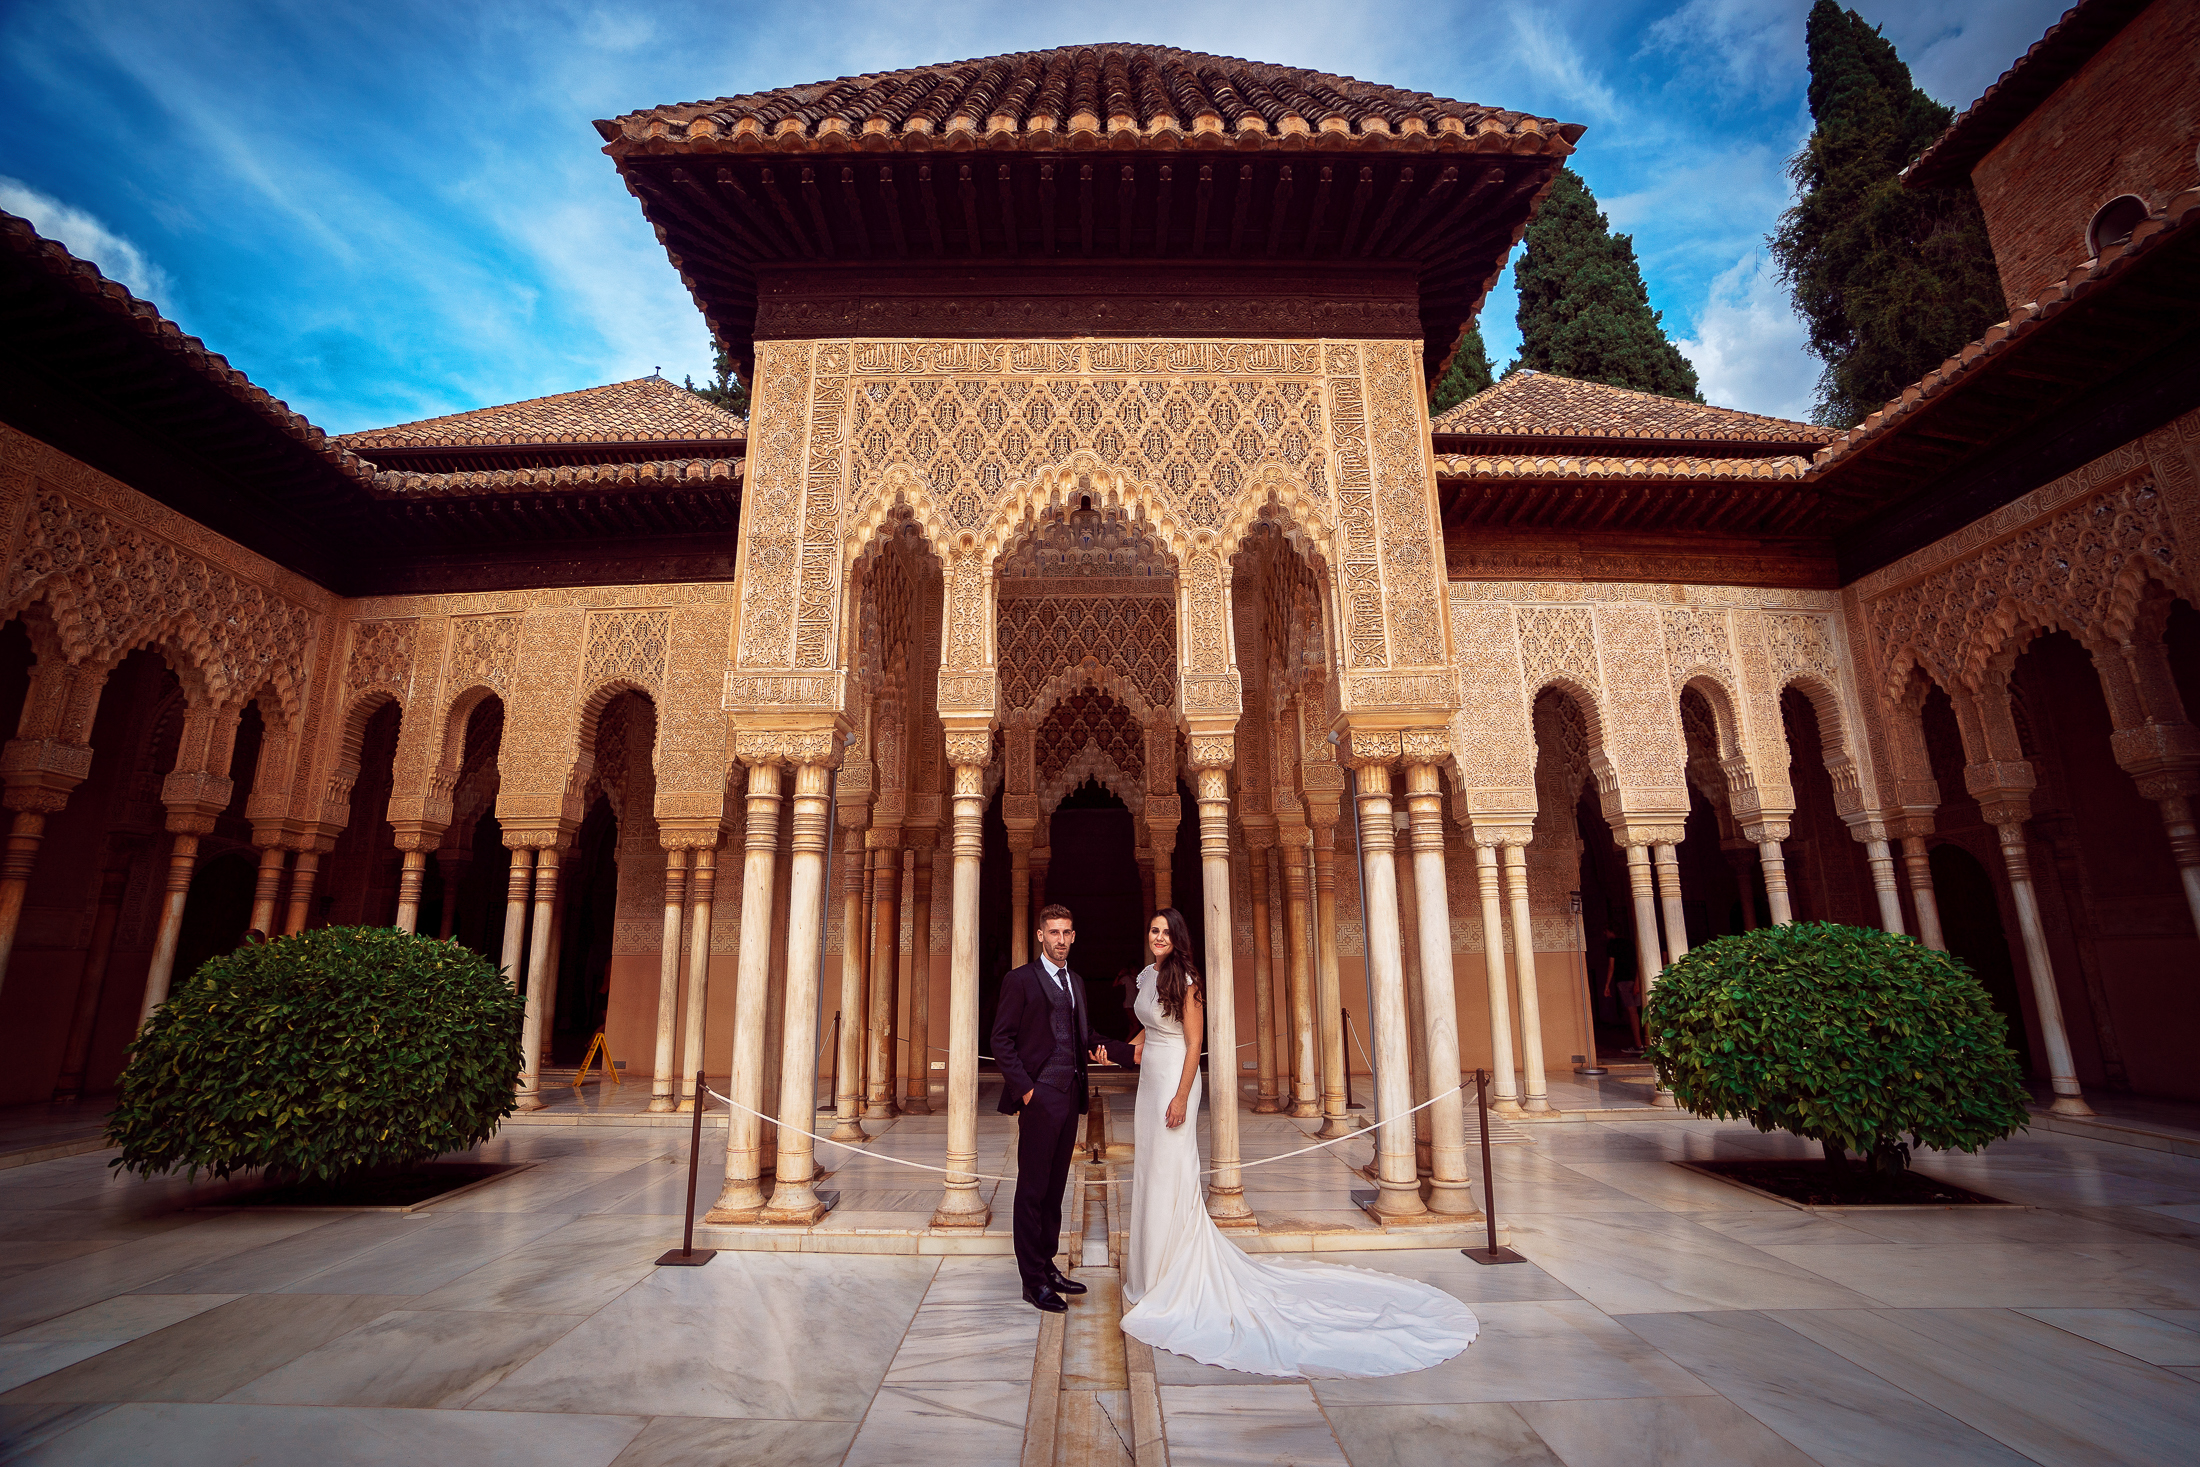 Wedding in Alhambra, Court of the Lions